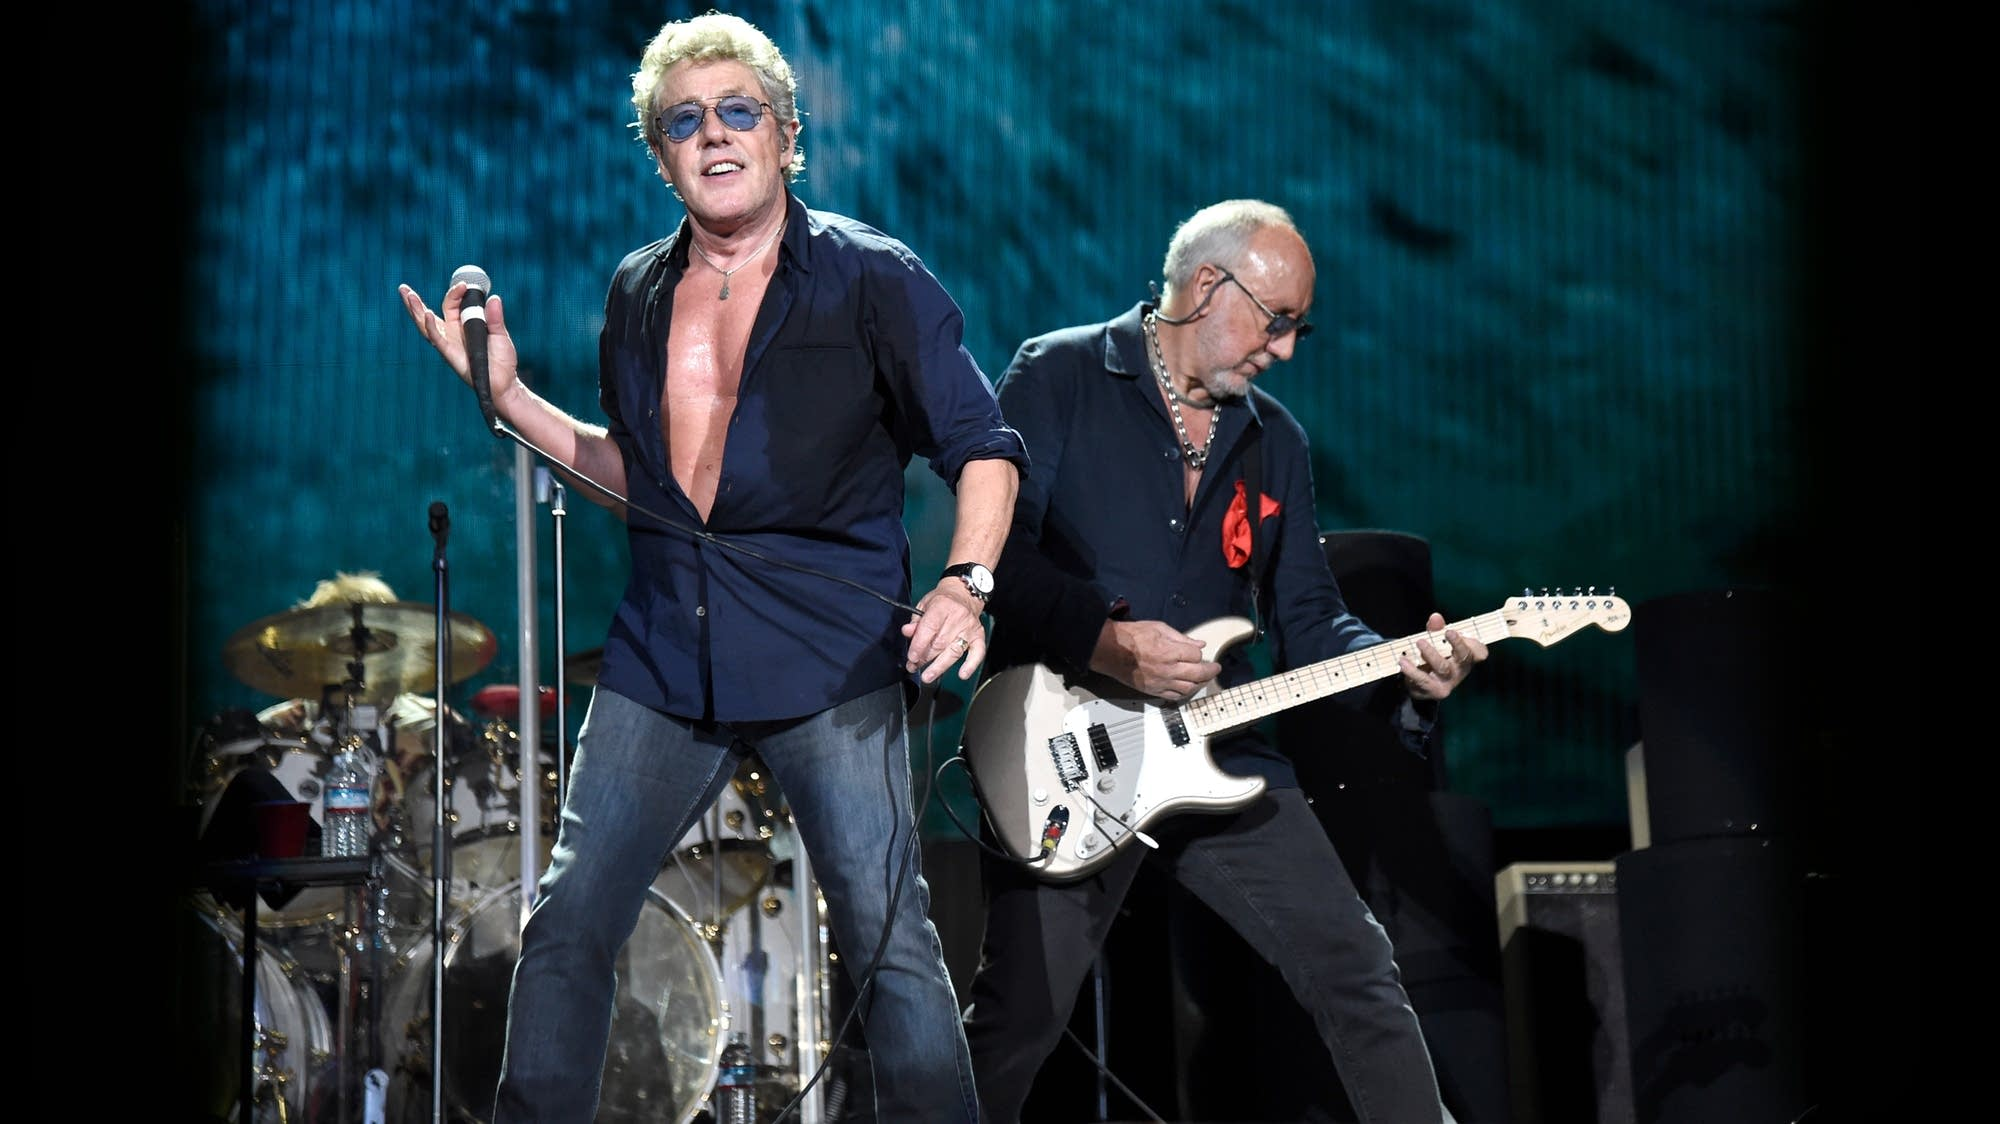 Singer Roger Daltrey and guitarist Pete Townshend are the Who.